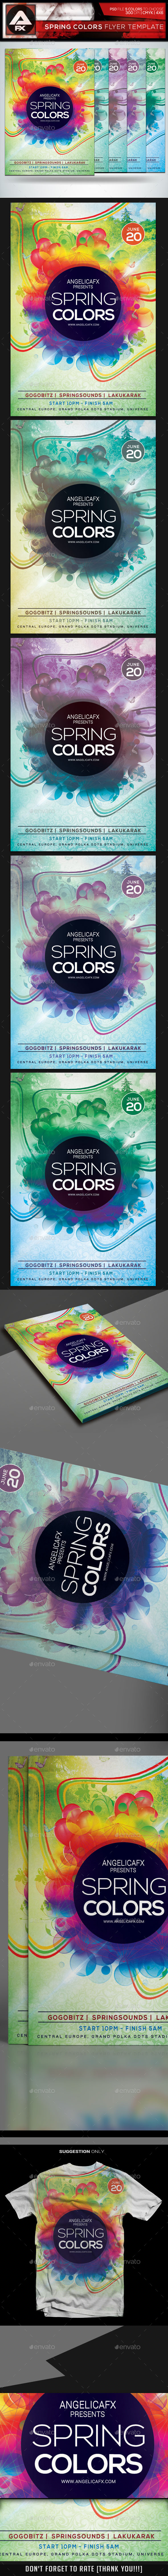 Spring Colors Flyer Template - Events Flyers